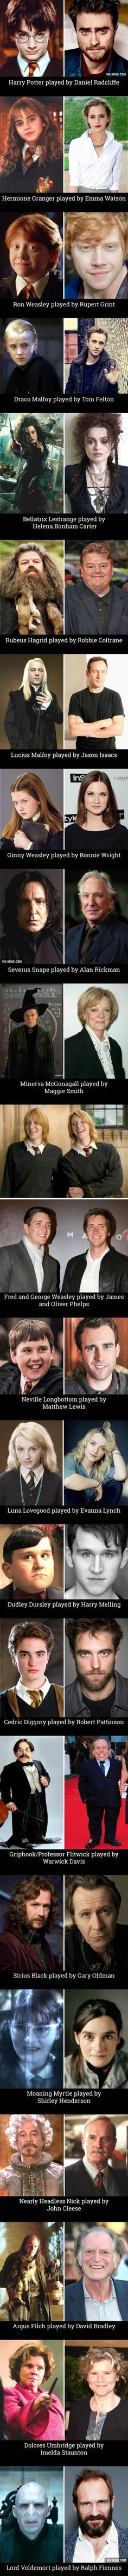 A fascinating look at the stars of Harry Potter 14 years later